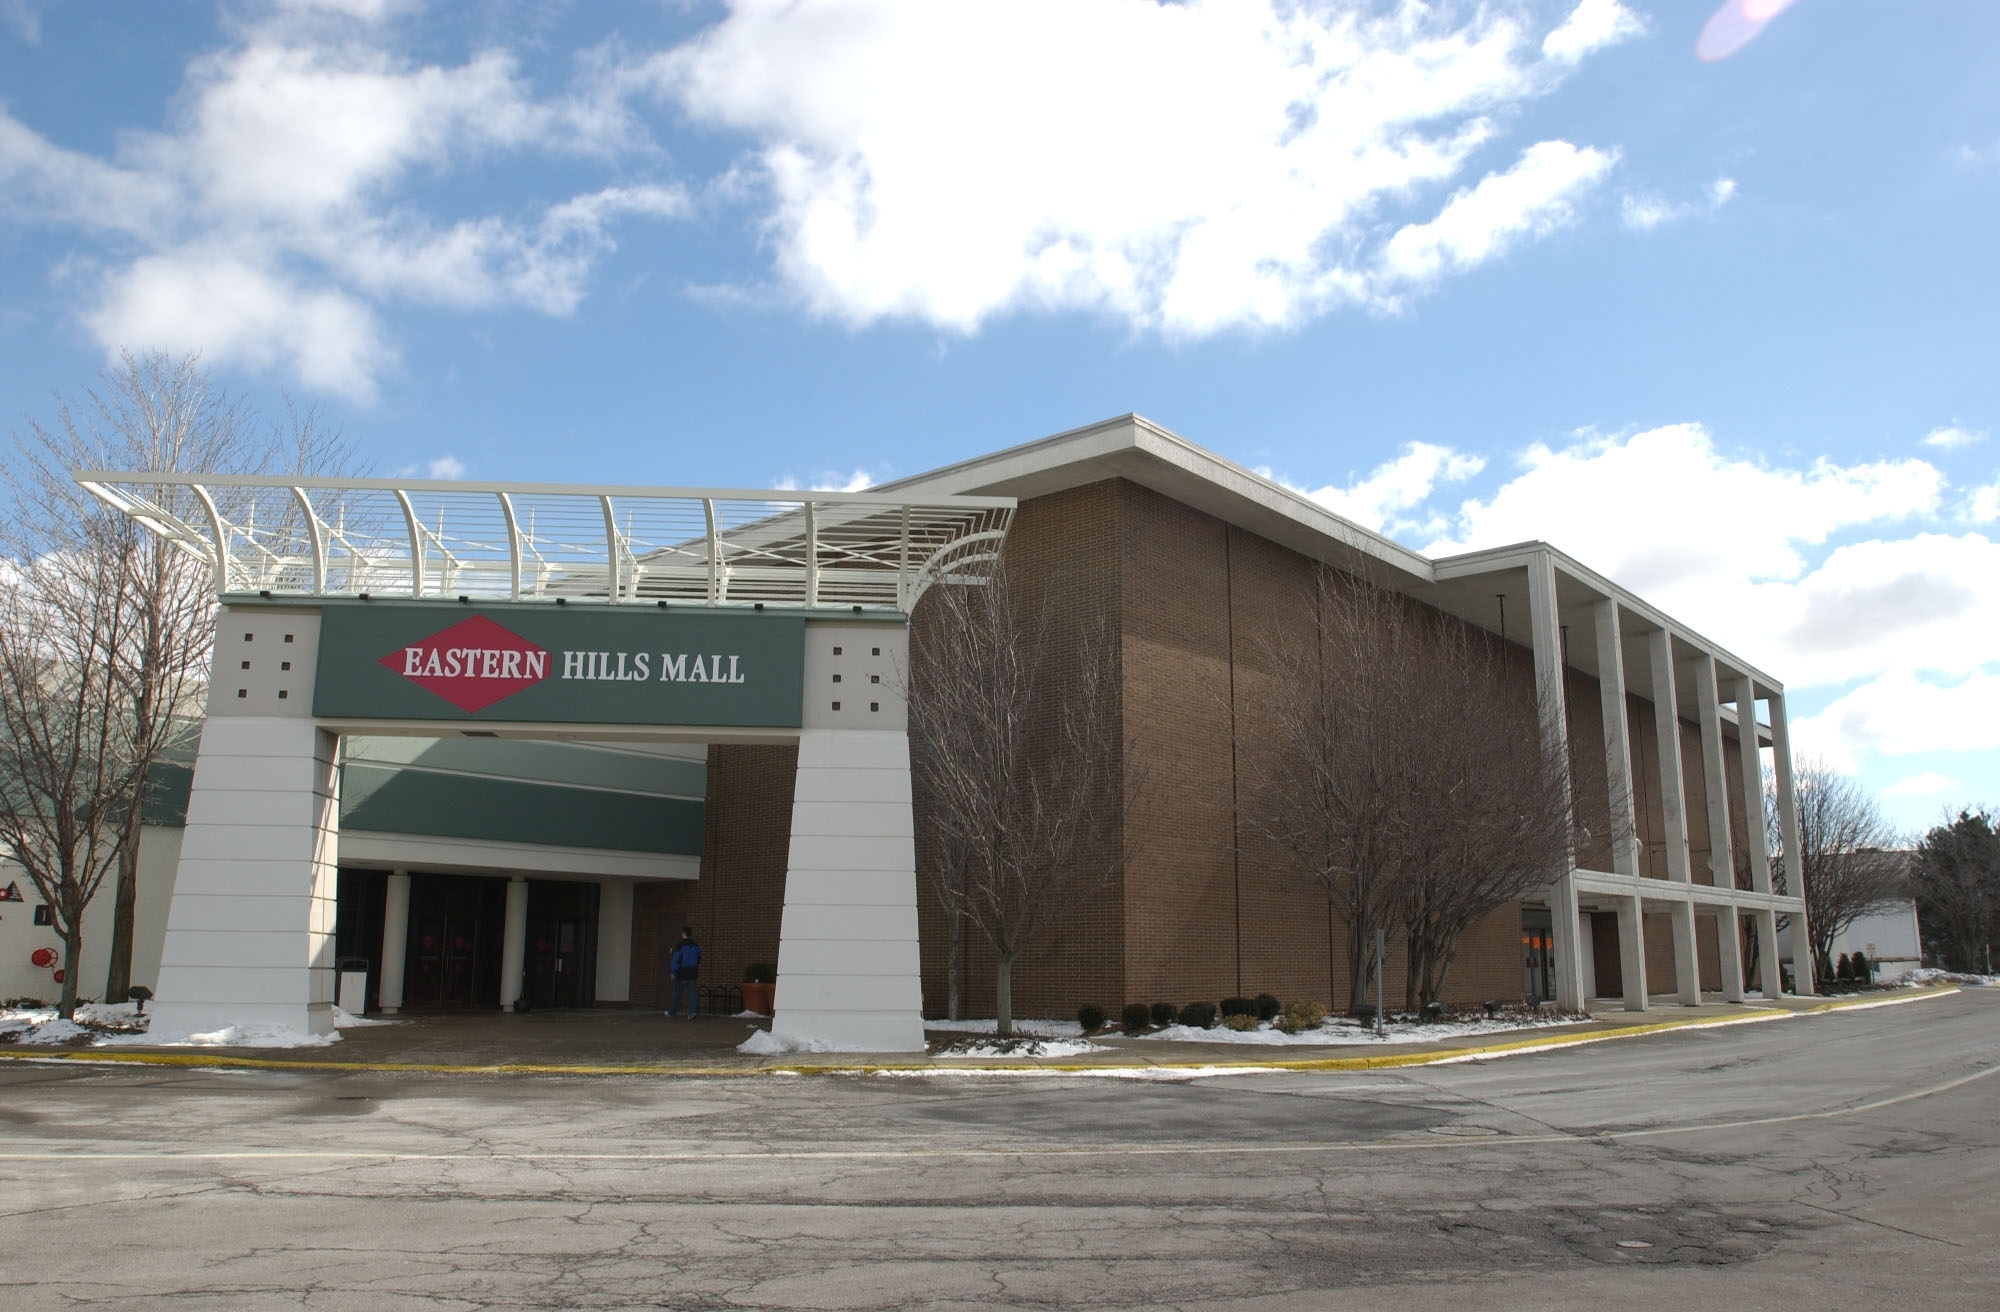 The Eastern Hills Mall in Clarence is in talks with Latitude 360, a Florida-based entertainment complex that has been likened to a Chuck E. Cheese's for adults.